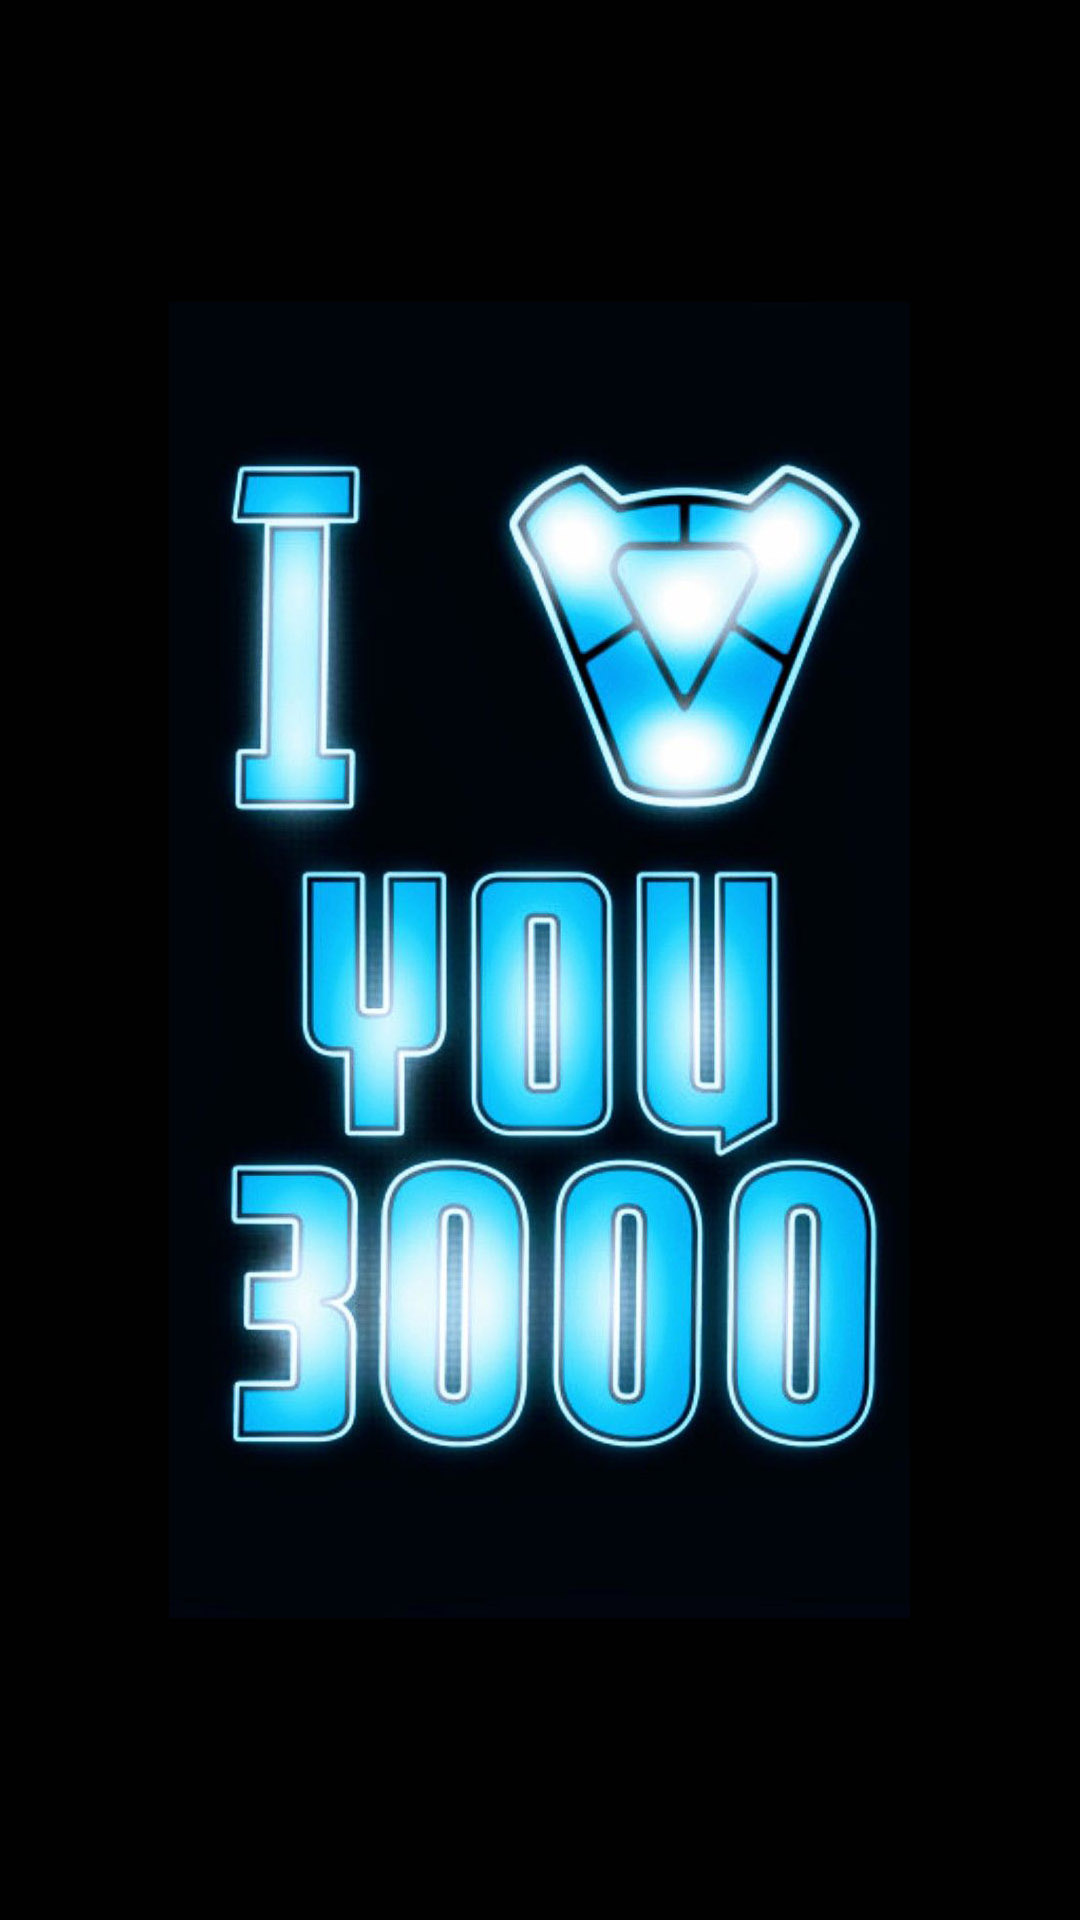 Iron Man I Love You 3000 iPhone Wallpaper